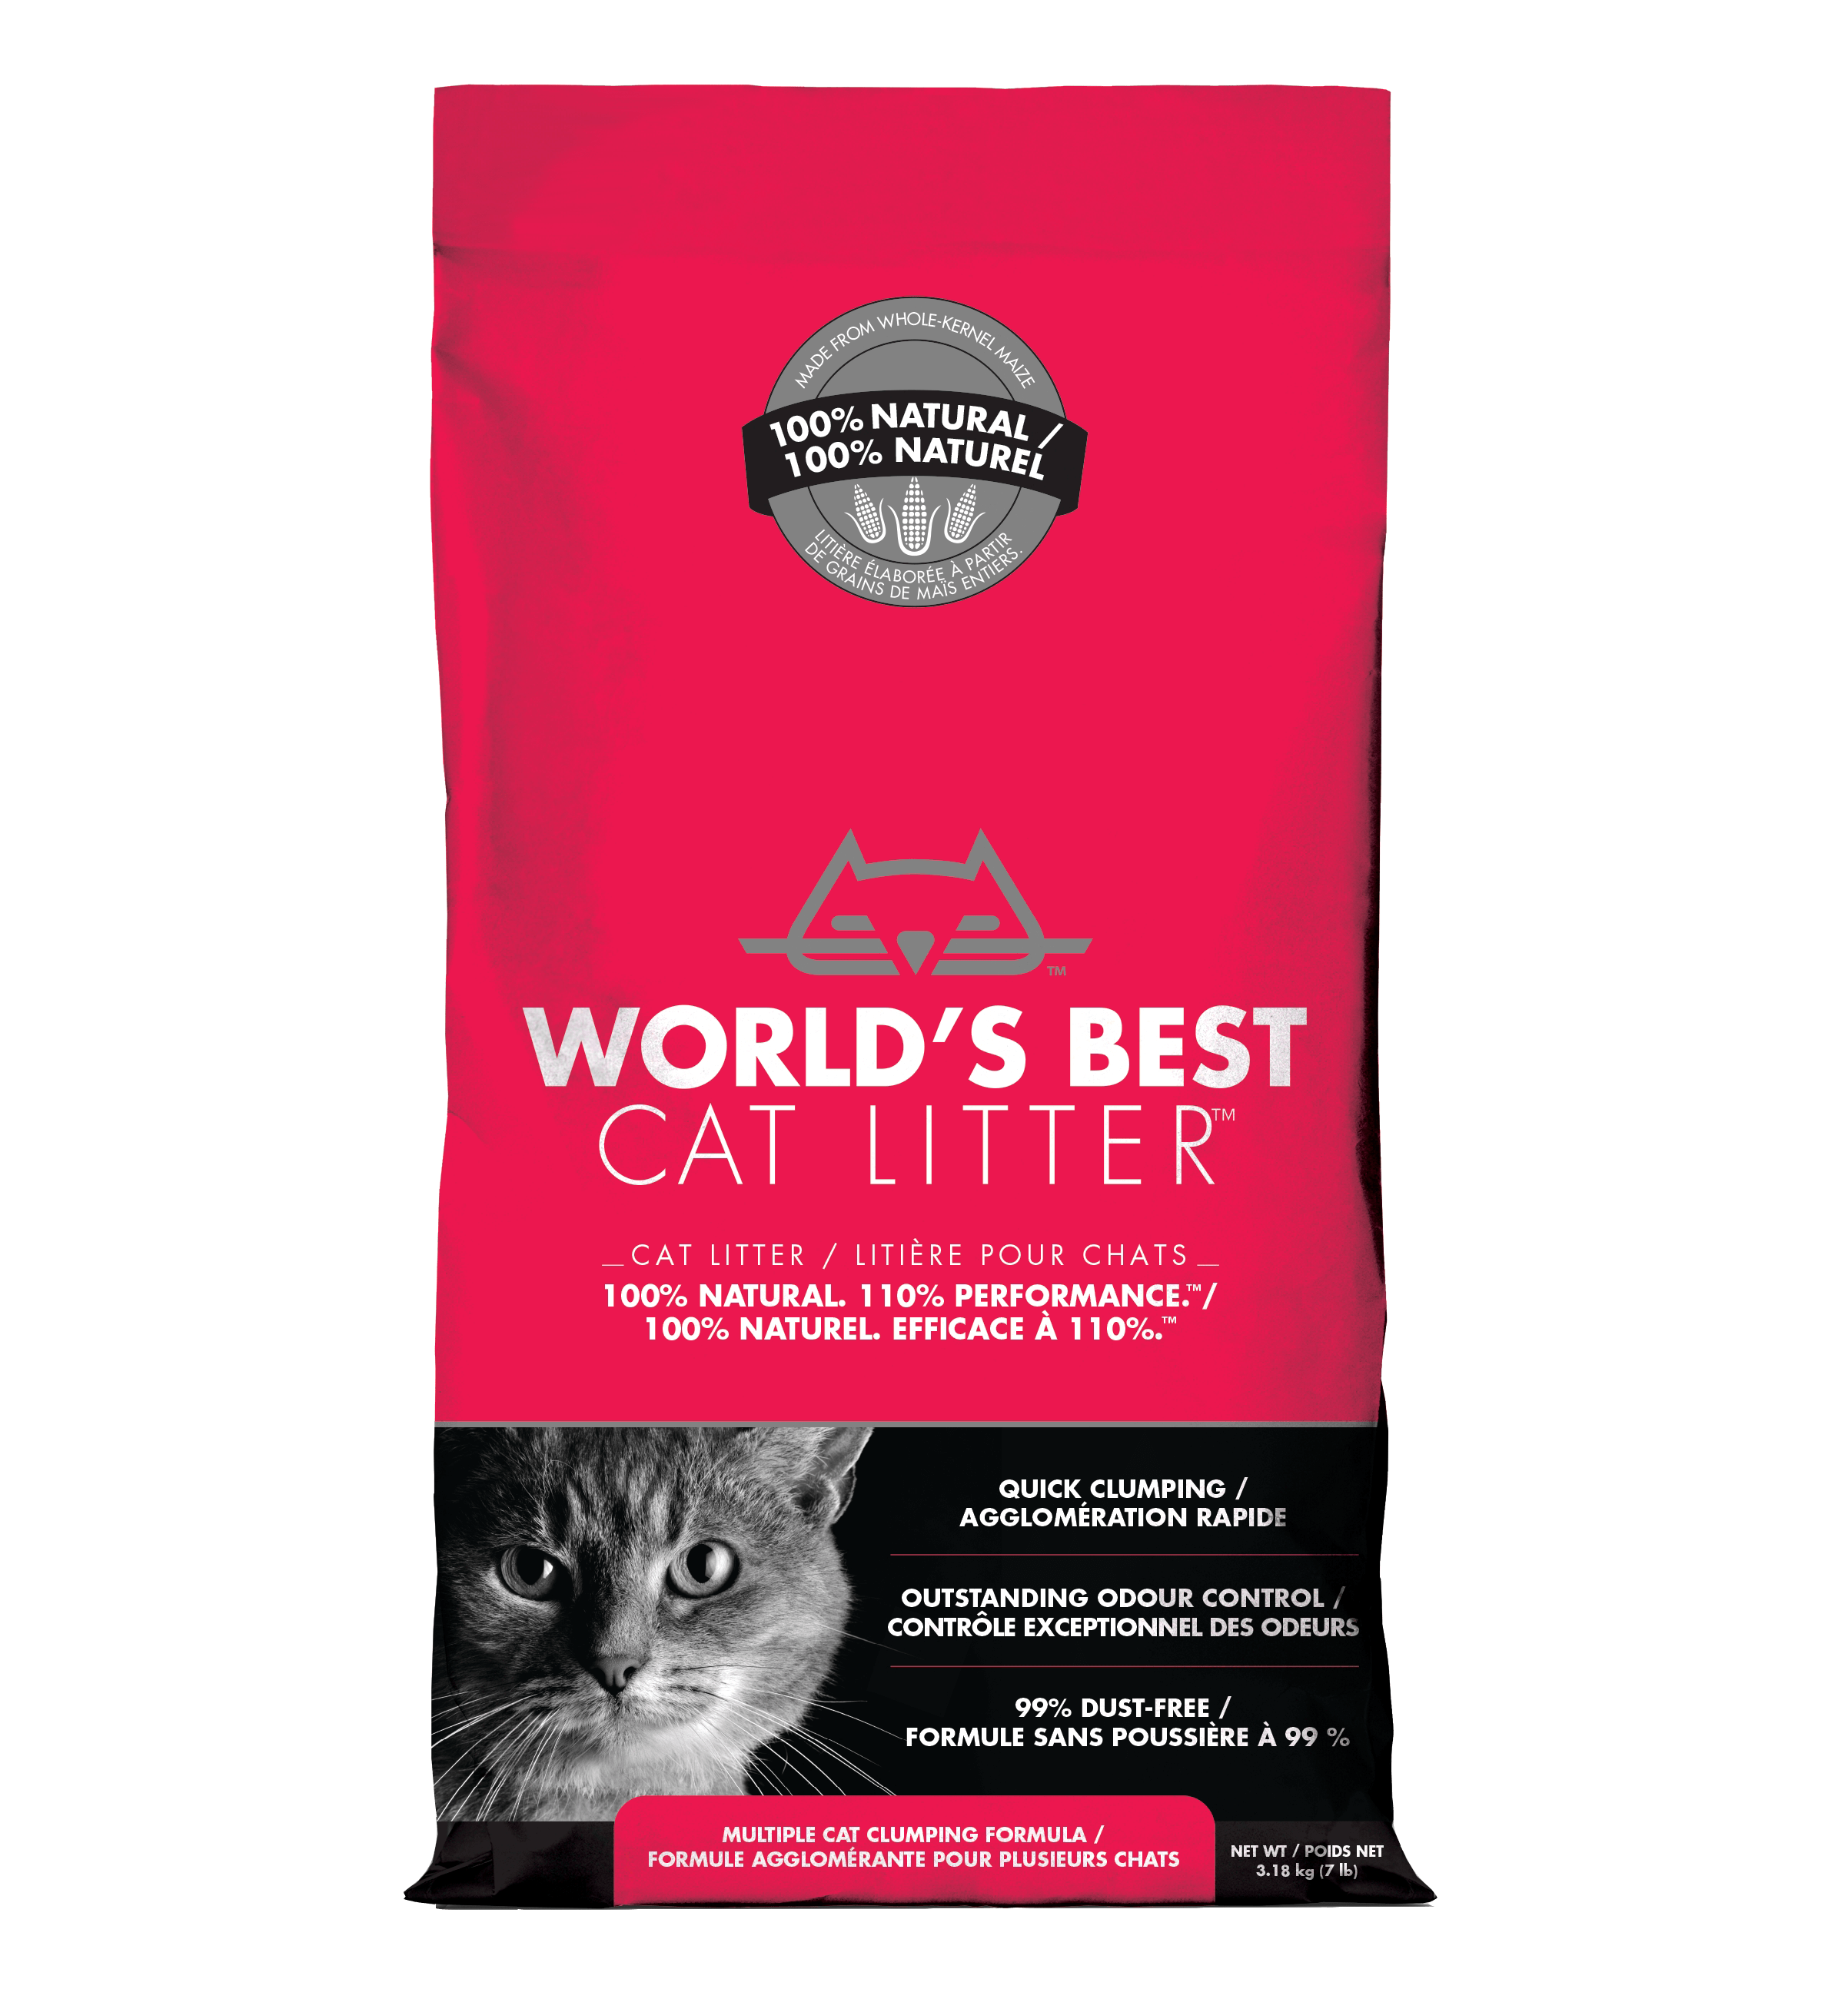 World's Best Cat Litter - Multi Cat Formula | 12.70kg - Click to enlarge picture.